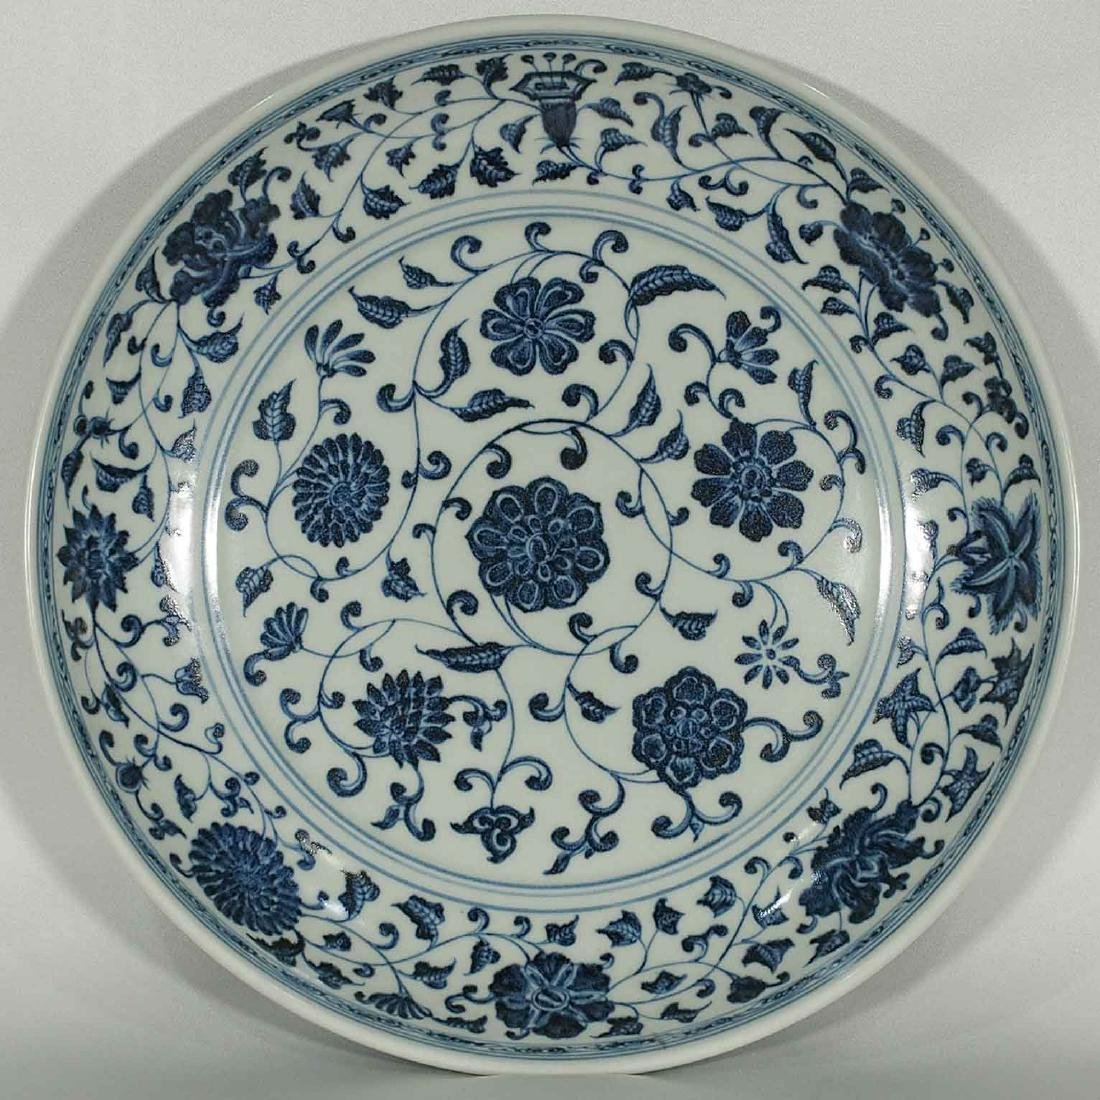 Charger with Floral Design, Yongle, Ming Dynasty